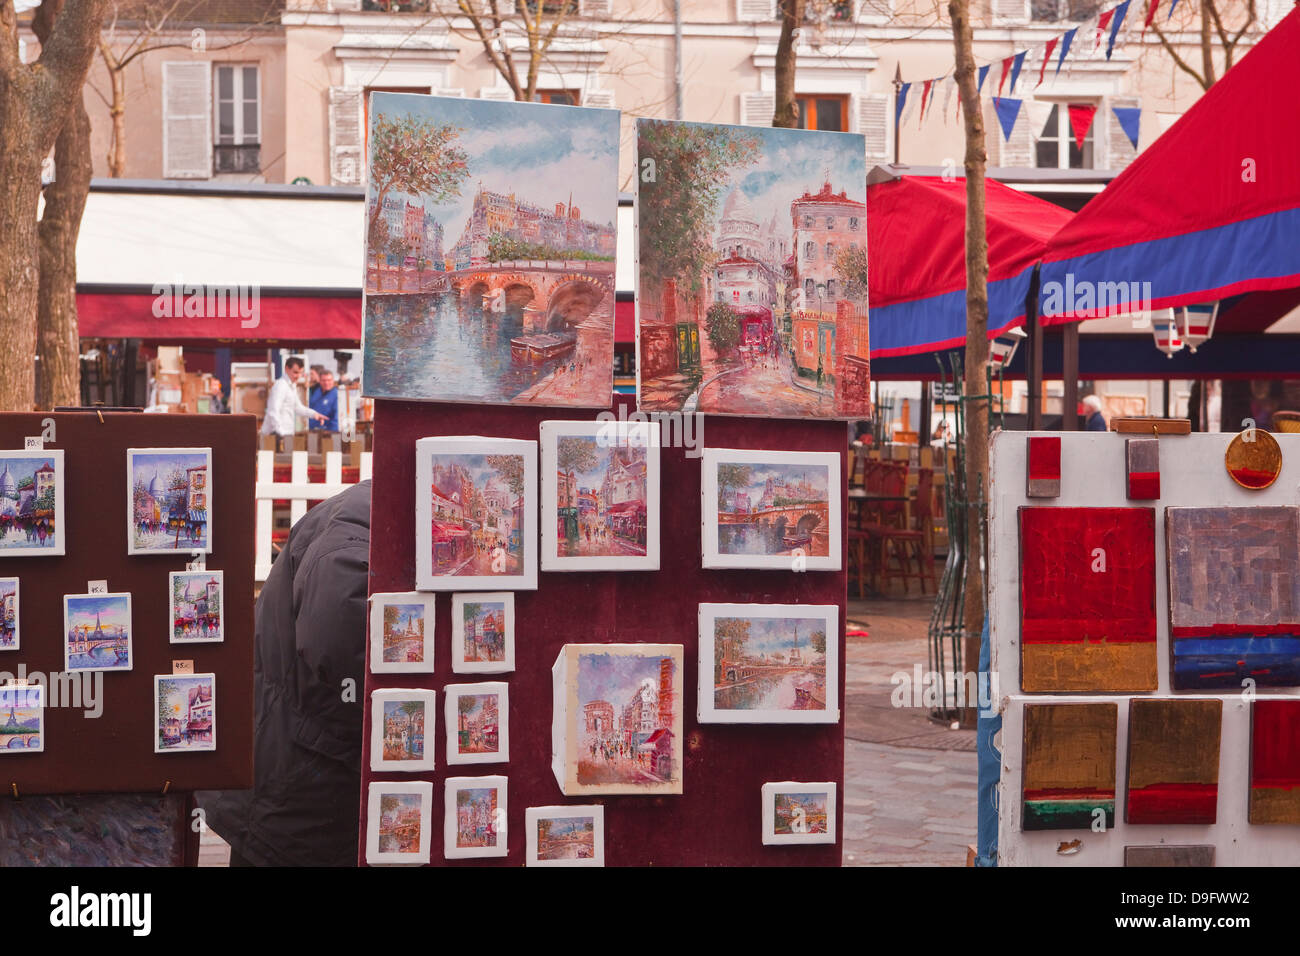 Paintings on sale at the famous Place du Tertre in Montmartre, Paris, France - Stock Image